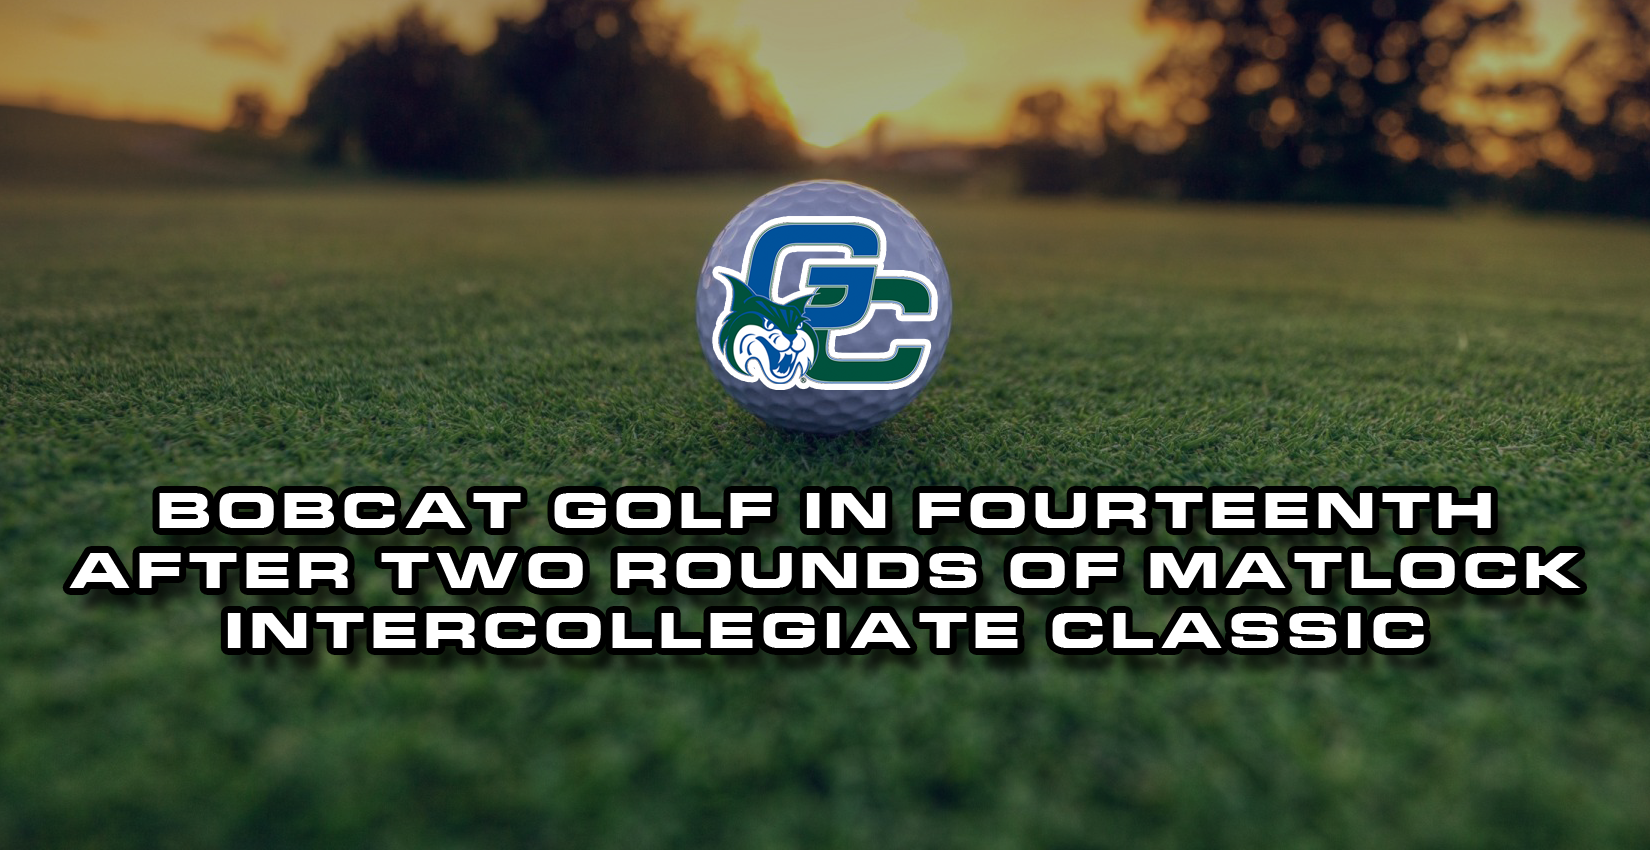 Bobcat Golf in Fourteenth After Two Rounds of Matlock Intercollegiate Classic